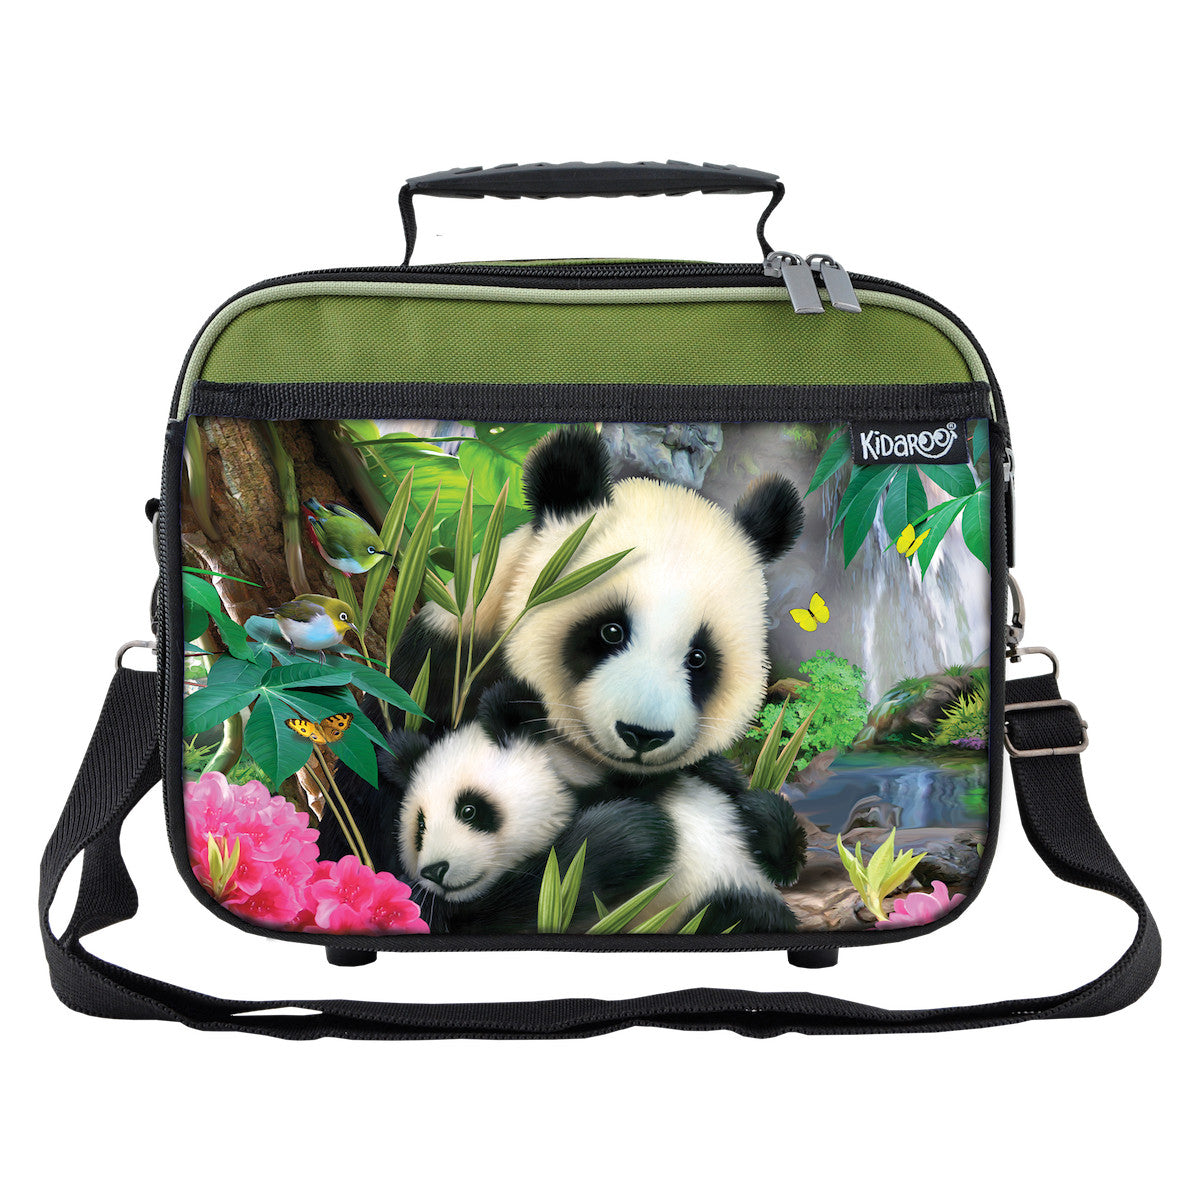 Precious Pandas School Lunchbox, Tote Bag for Boys, Girls, Kids